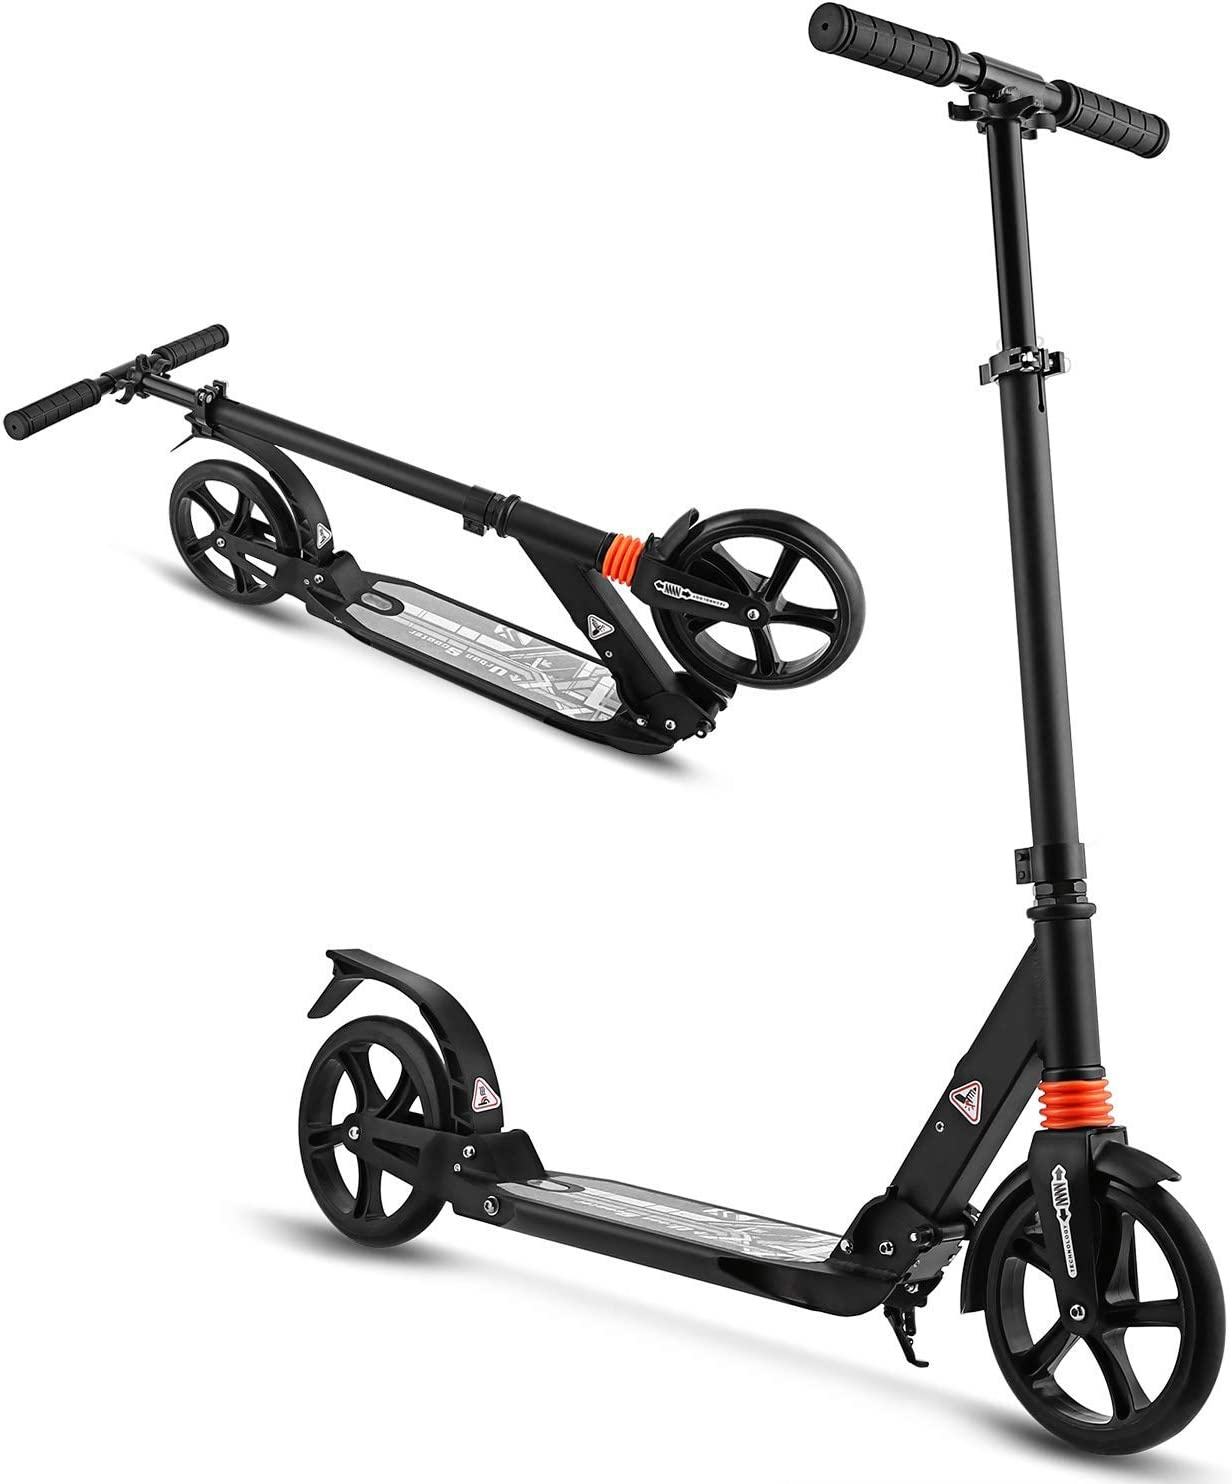 WeSkate Scooter for Adults Teens, Big Wheels Scooter Easy Folding Kick Scooter Durable Push Scooter Support 220lbs Suitable for Age 12 Up Teens Adults